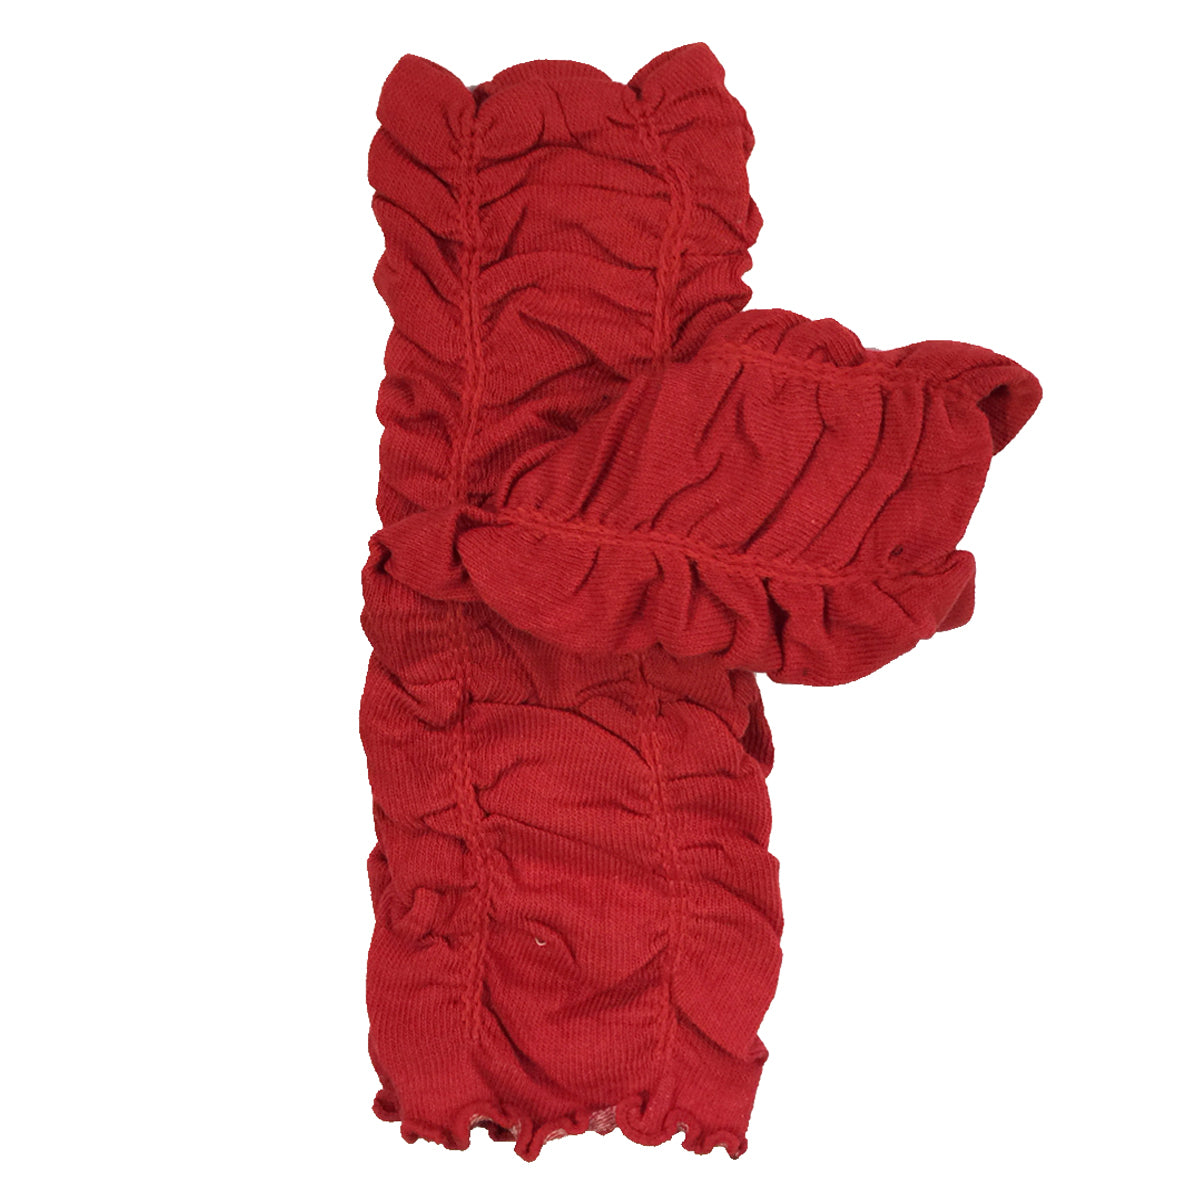 Wrapables Ruffle Leg Warmers for Toddler (Set of 4)